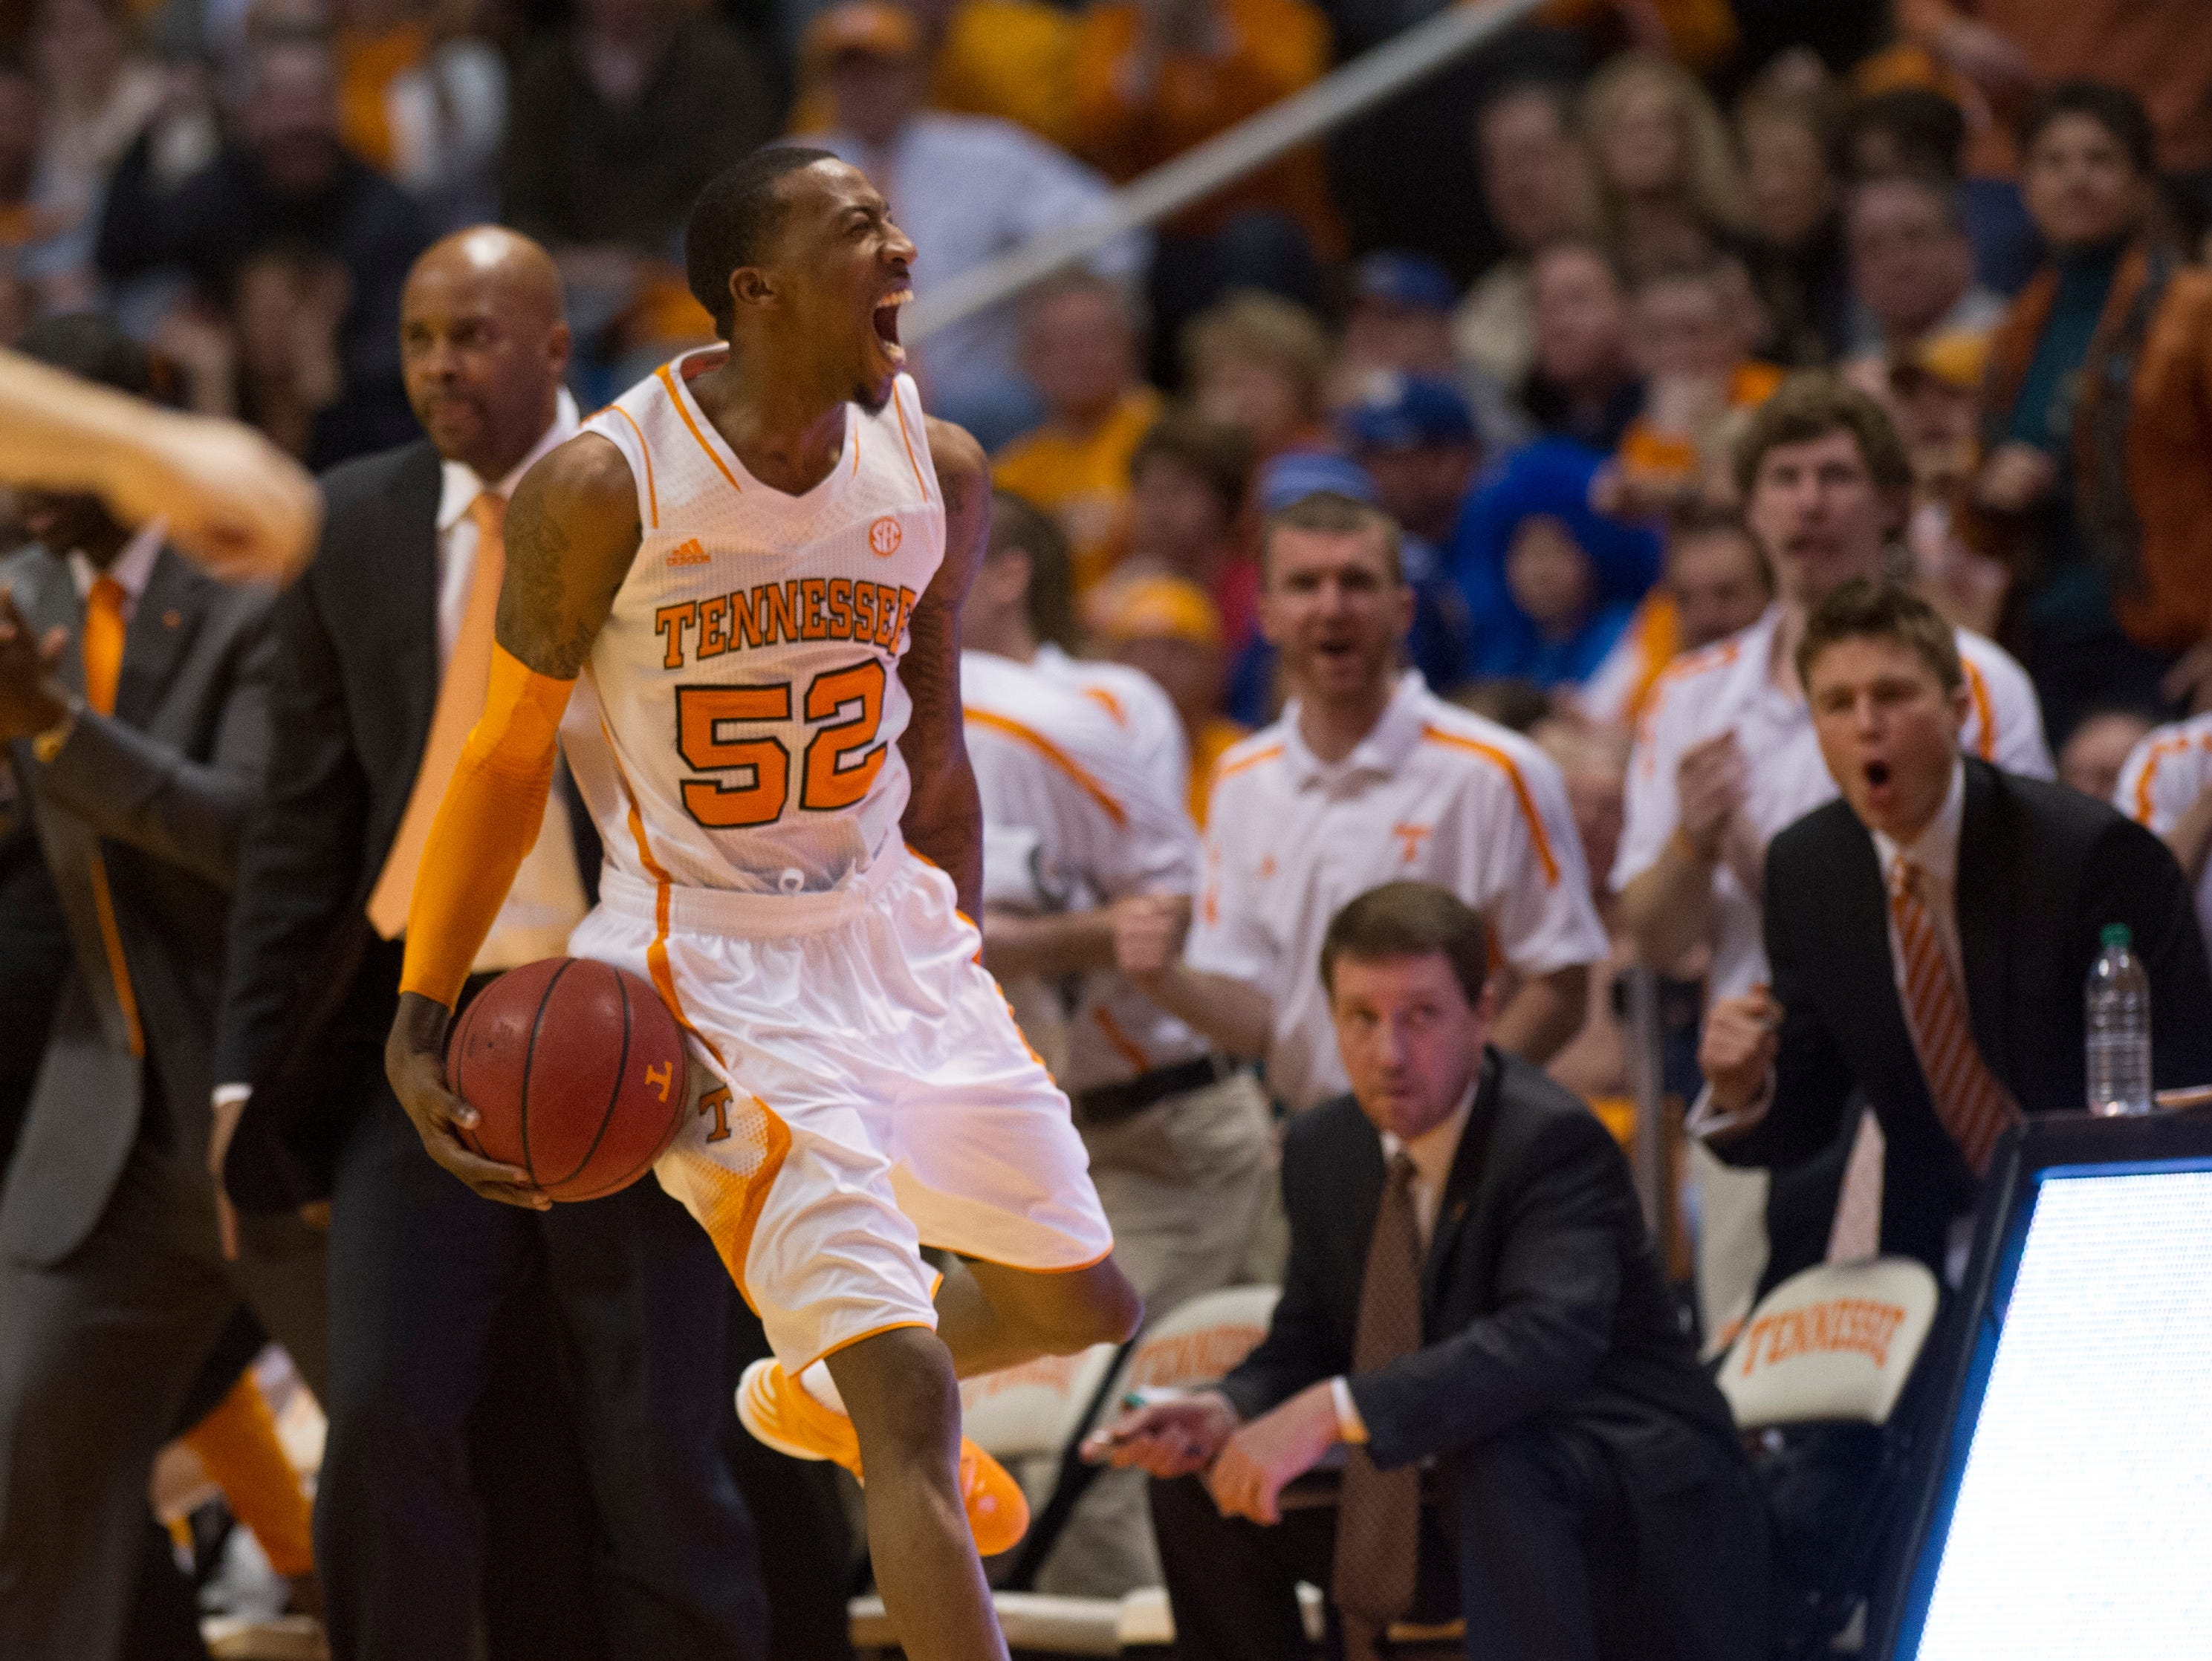 Tennessee guard Jordan McRae (52) reacts after a foul during the first half against Kentucky at Thompson-Boling Arena Saturday, Feb. 16, 2013.